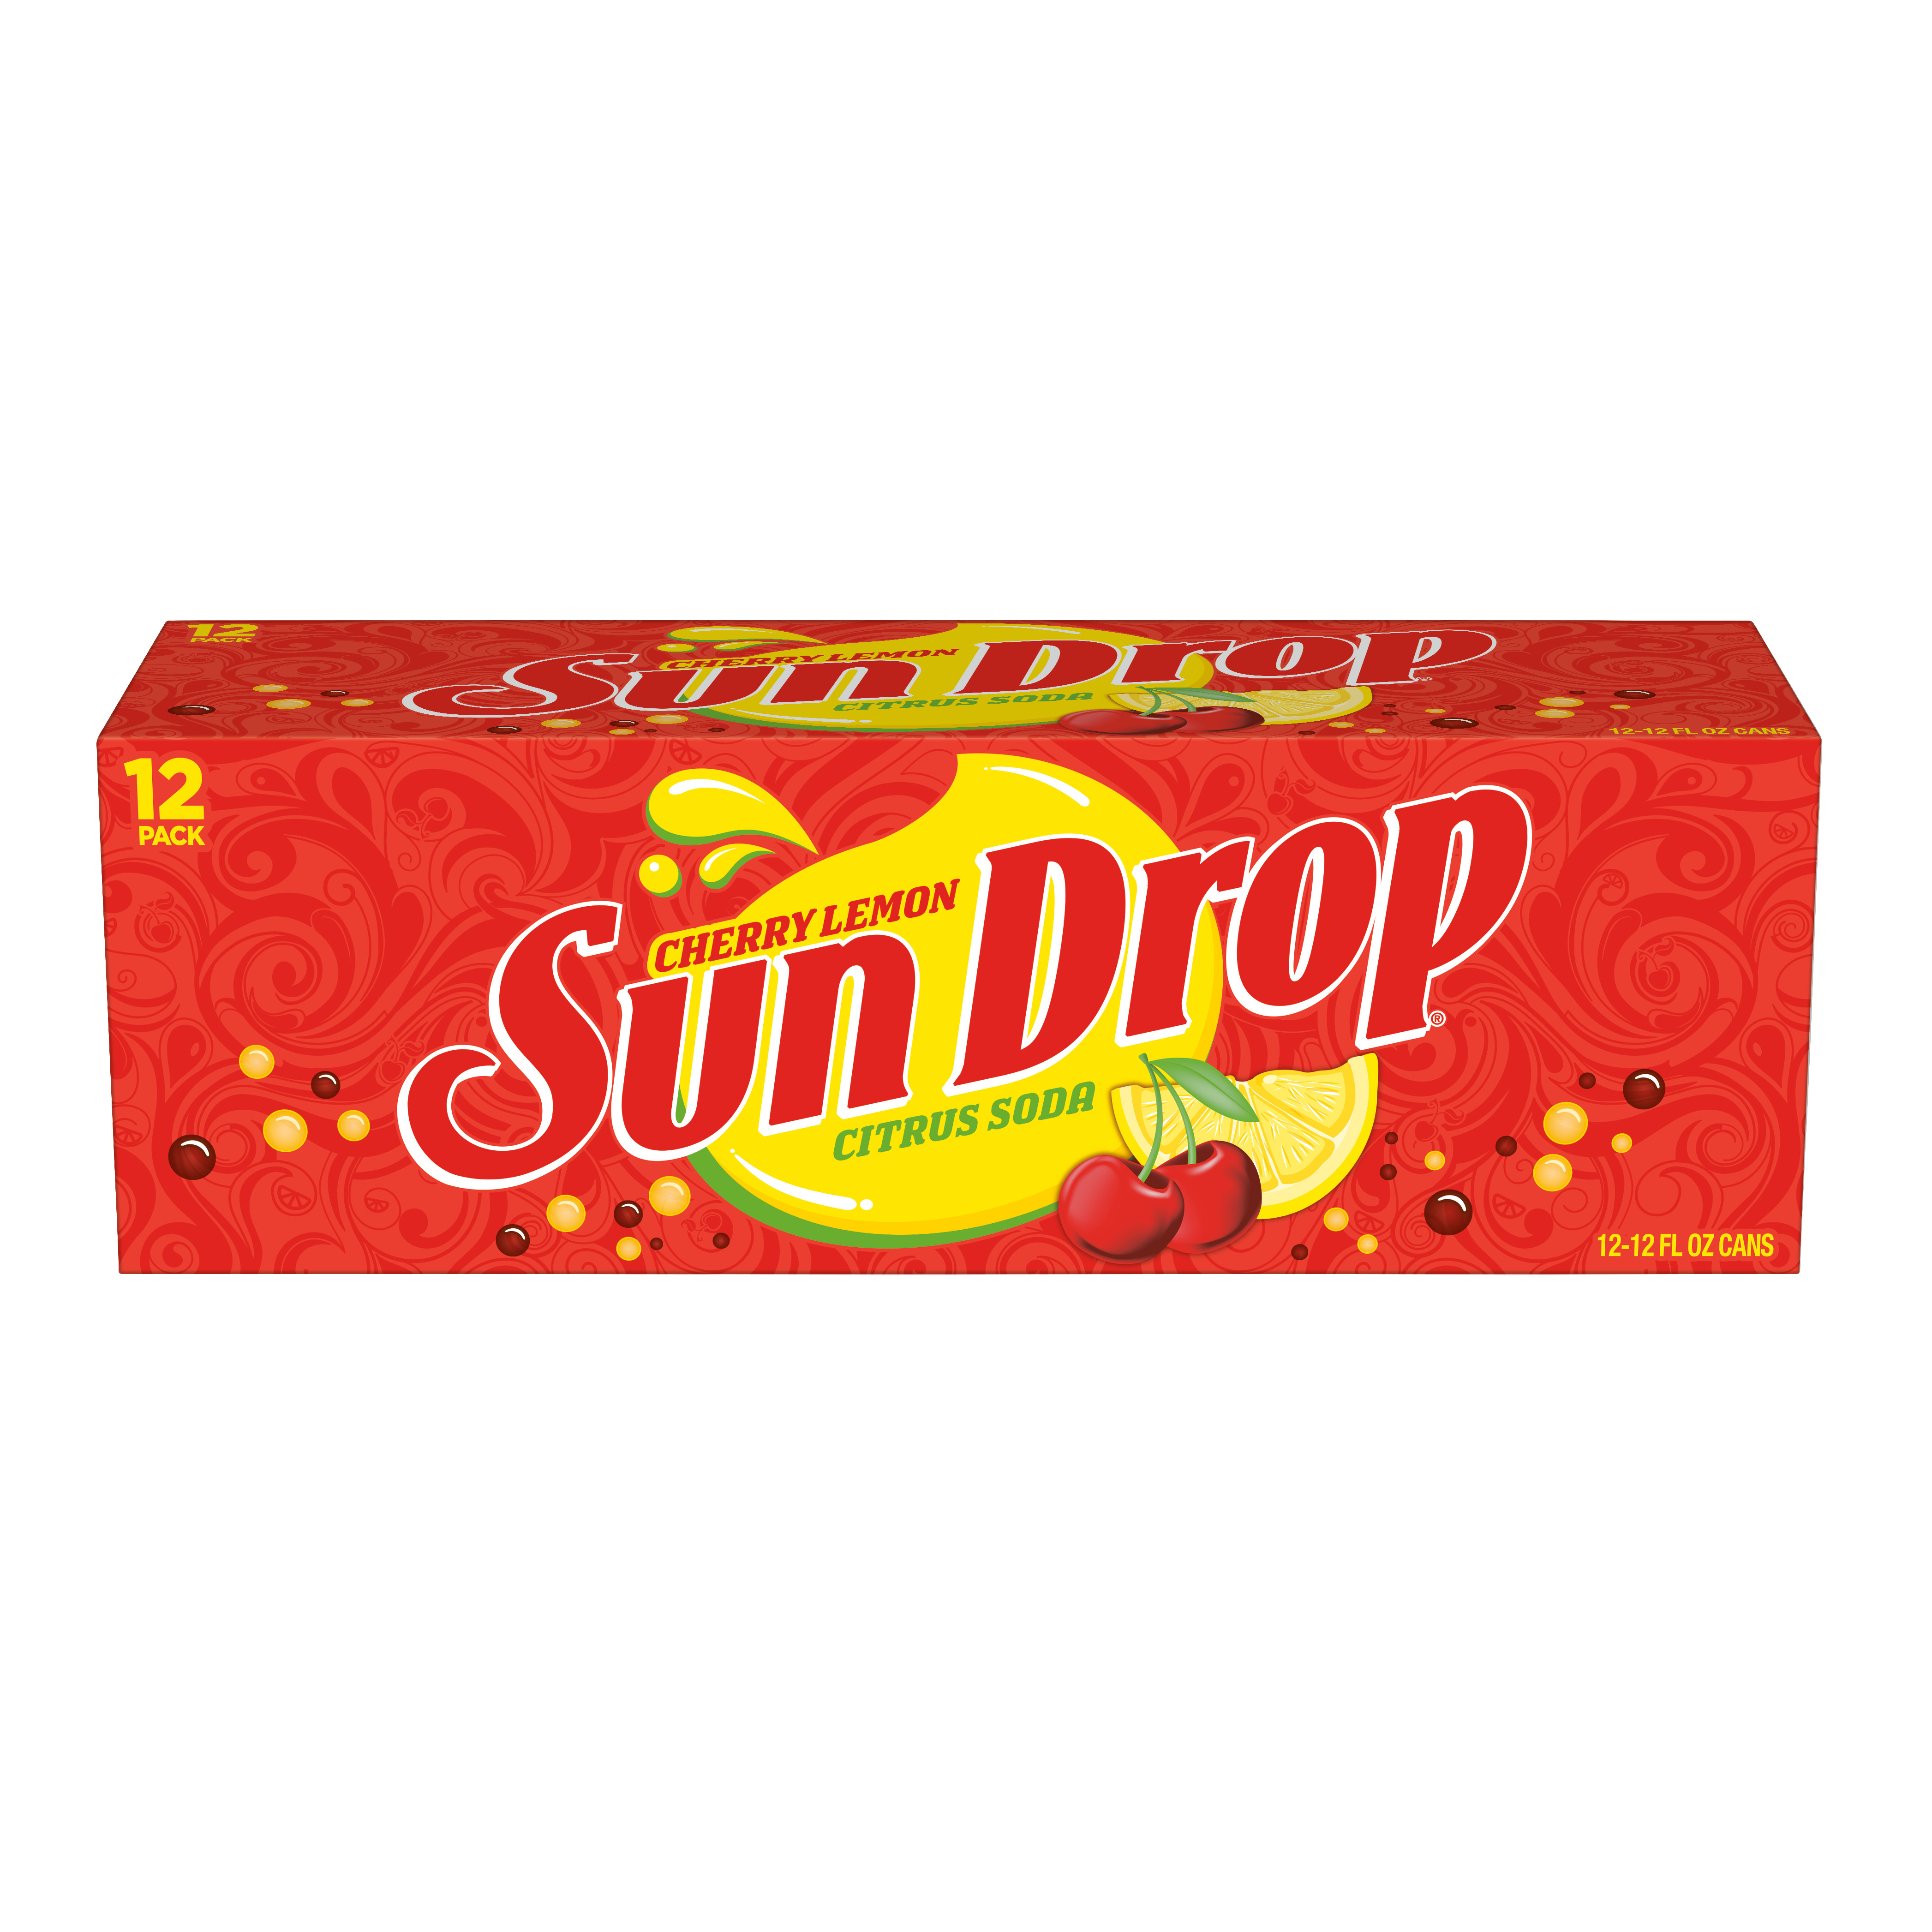 Sun Drop Cherry Lemon, 12 fl oz, 12 pack